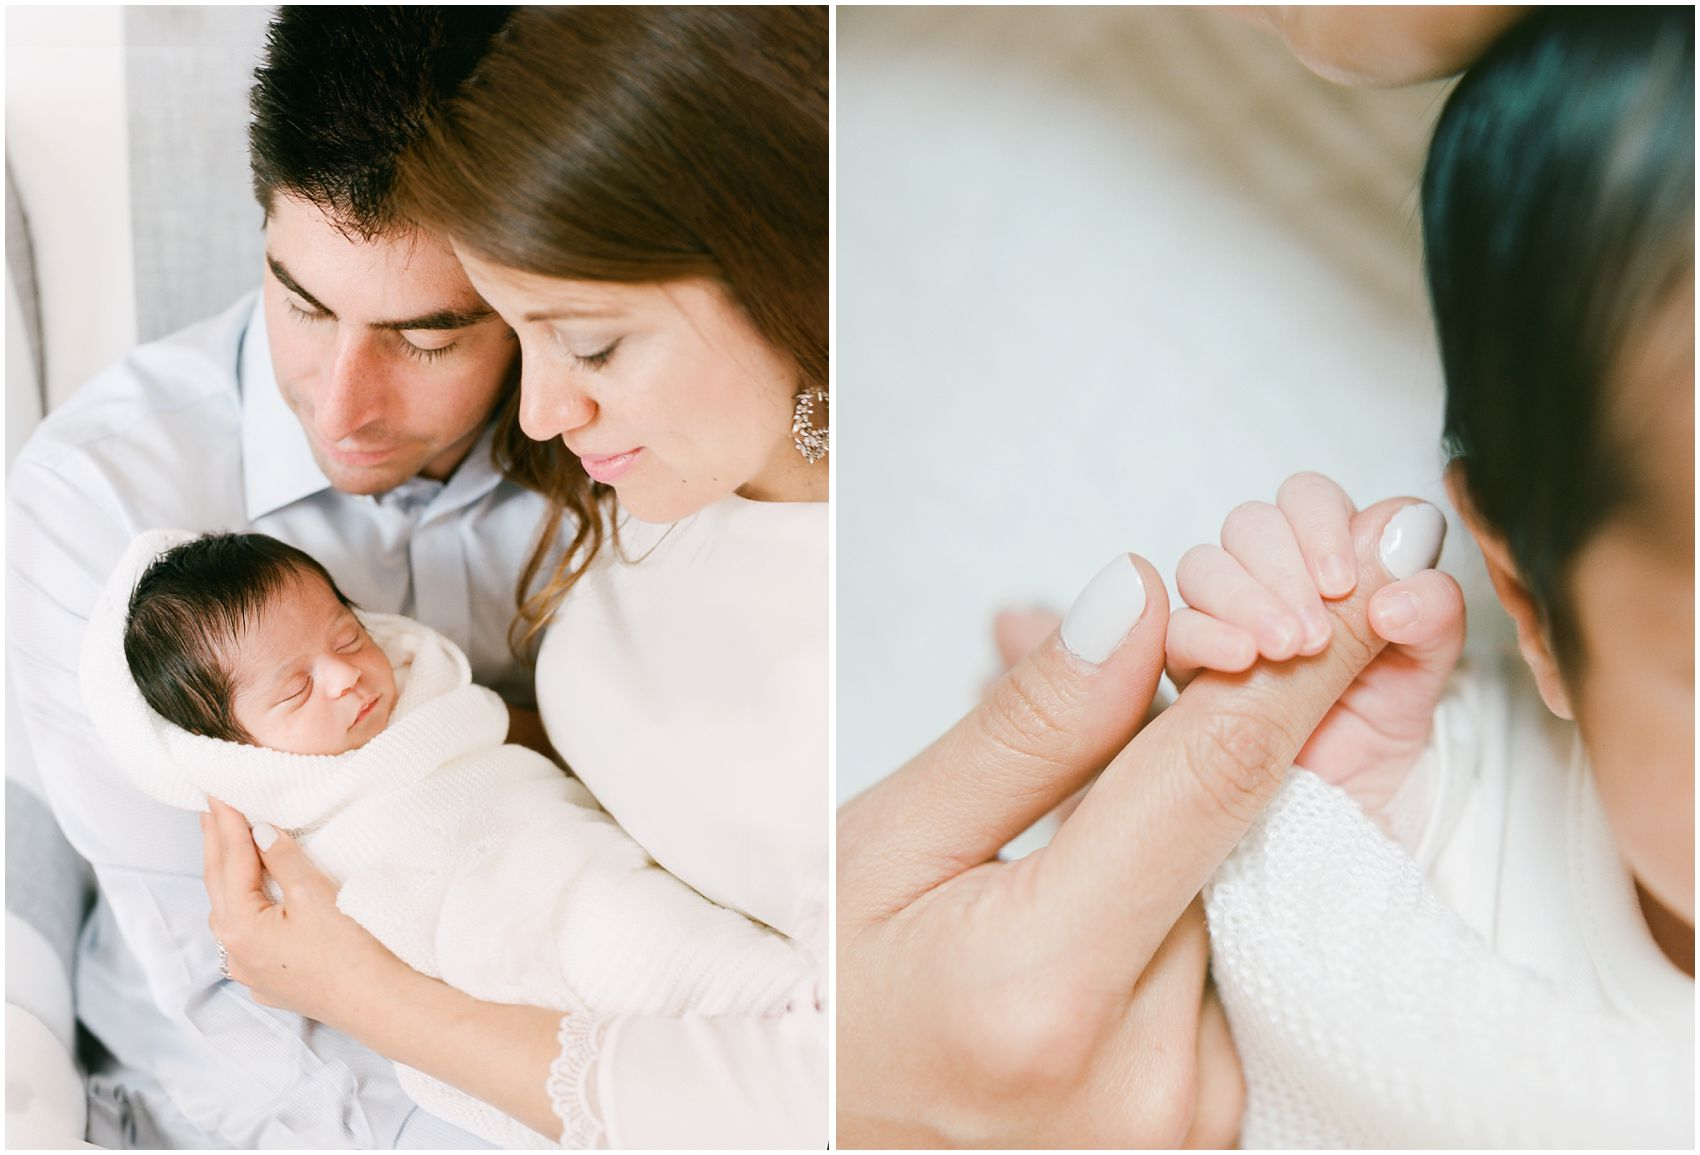 Indoor portrait of parents holding their baby girl in a tight space for NYC newborn lifestyle photos